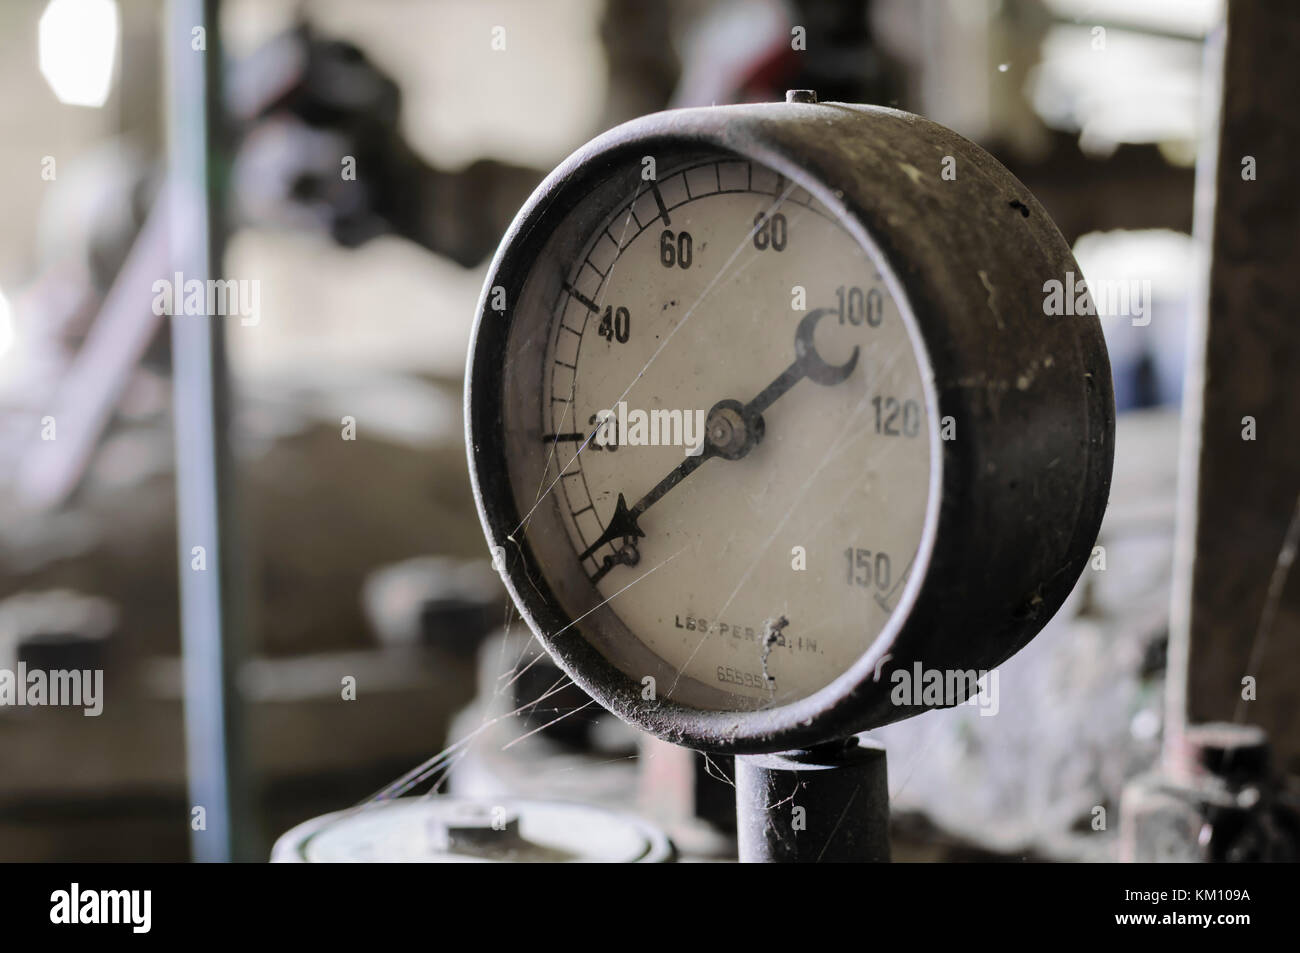 Old pressure gauge on a pump manufactured around 1940. - Stock Image